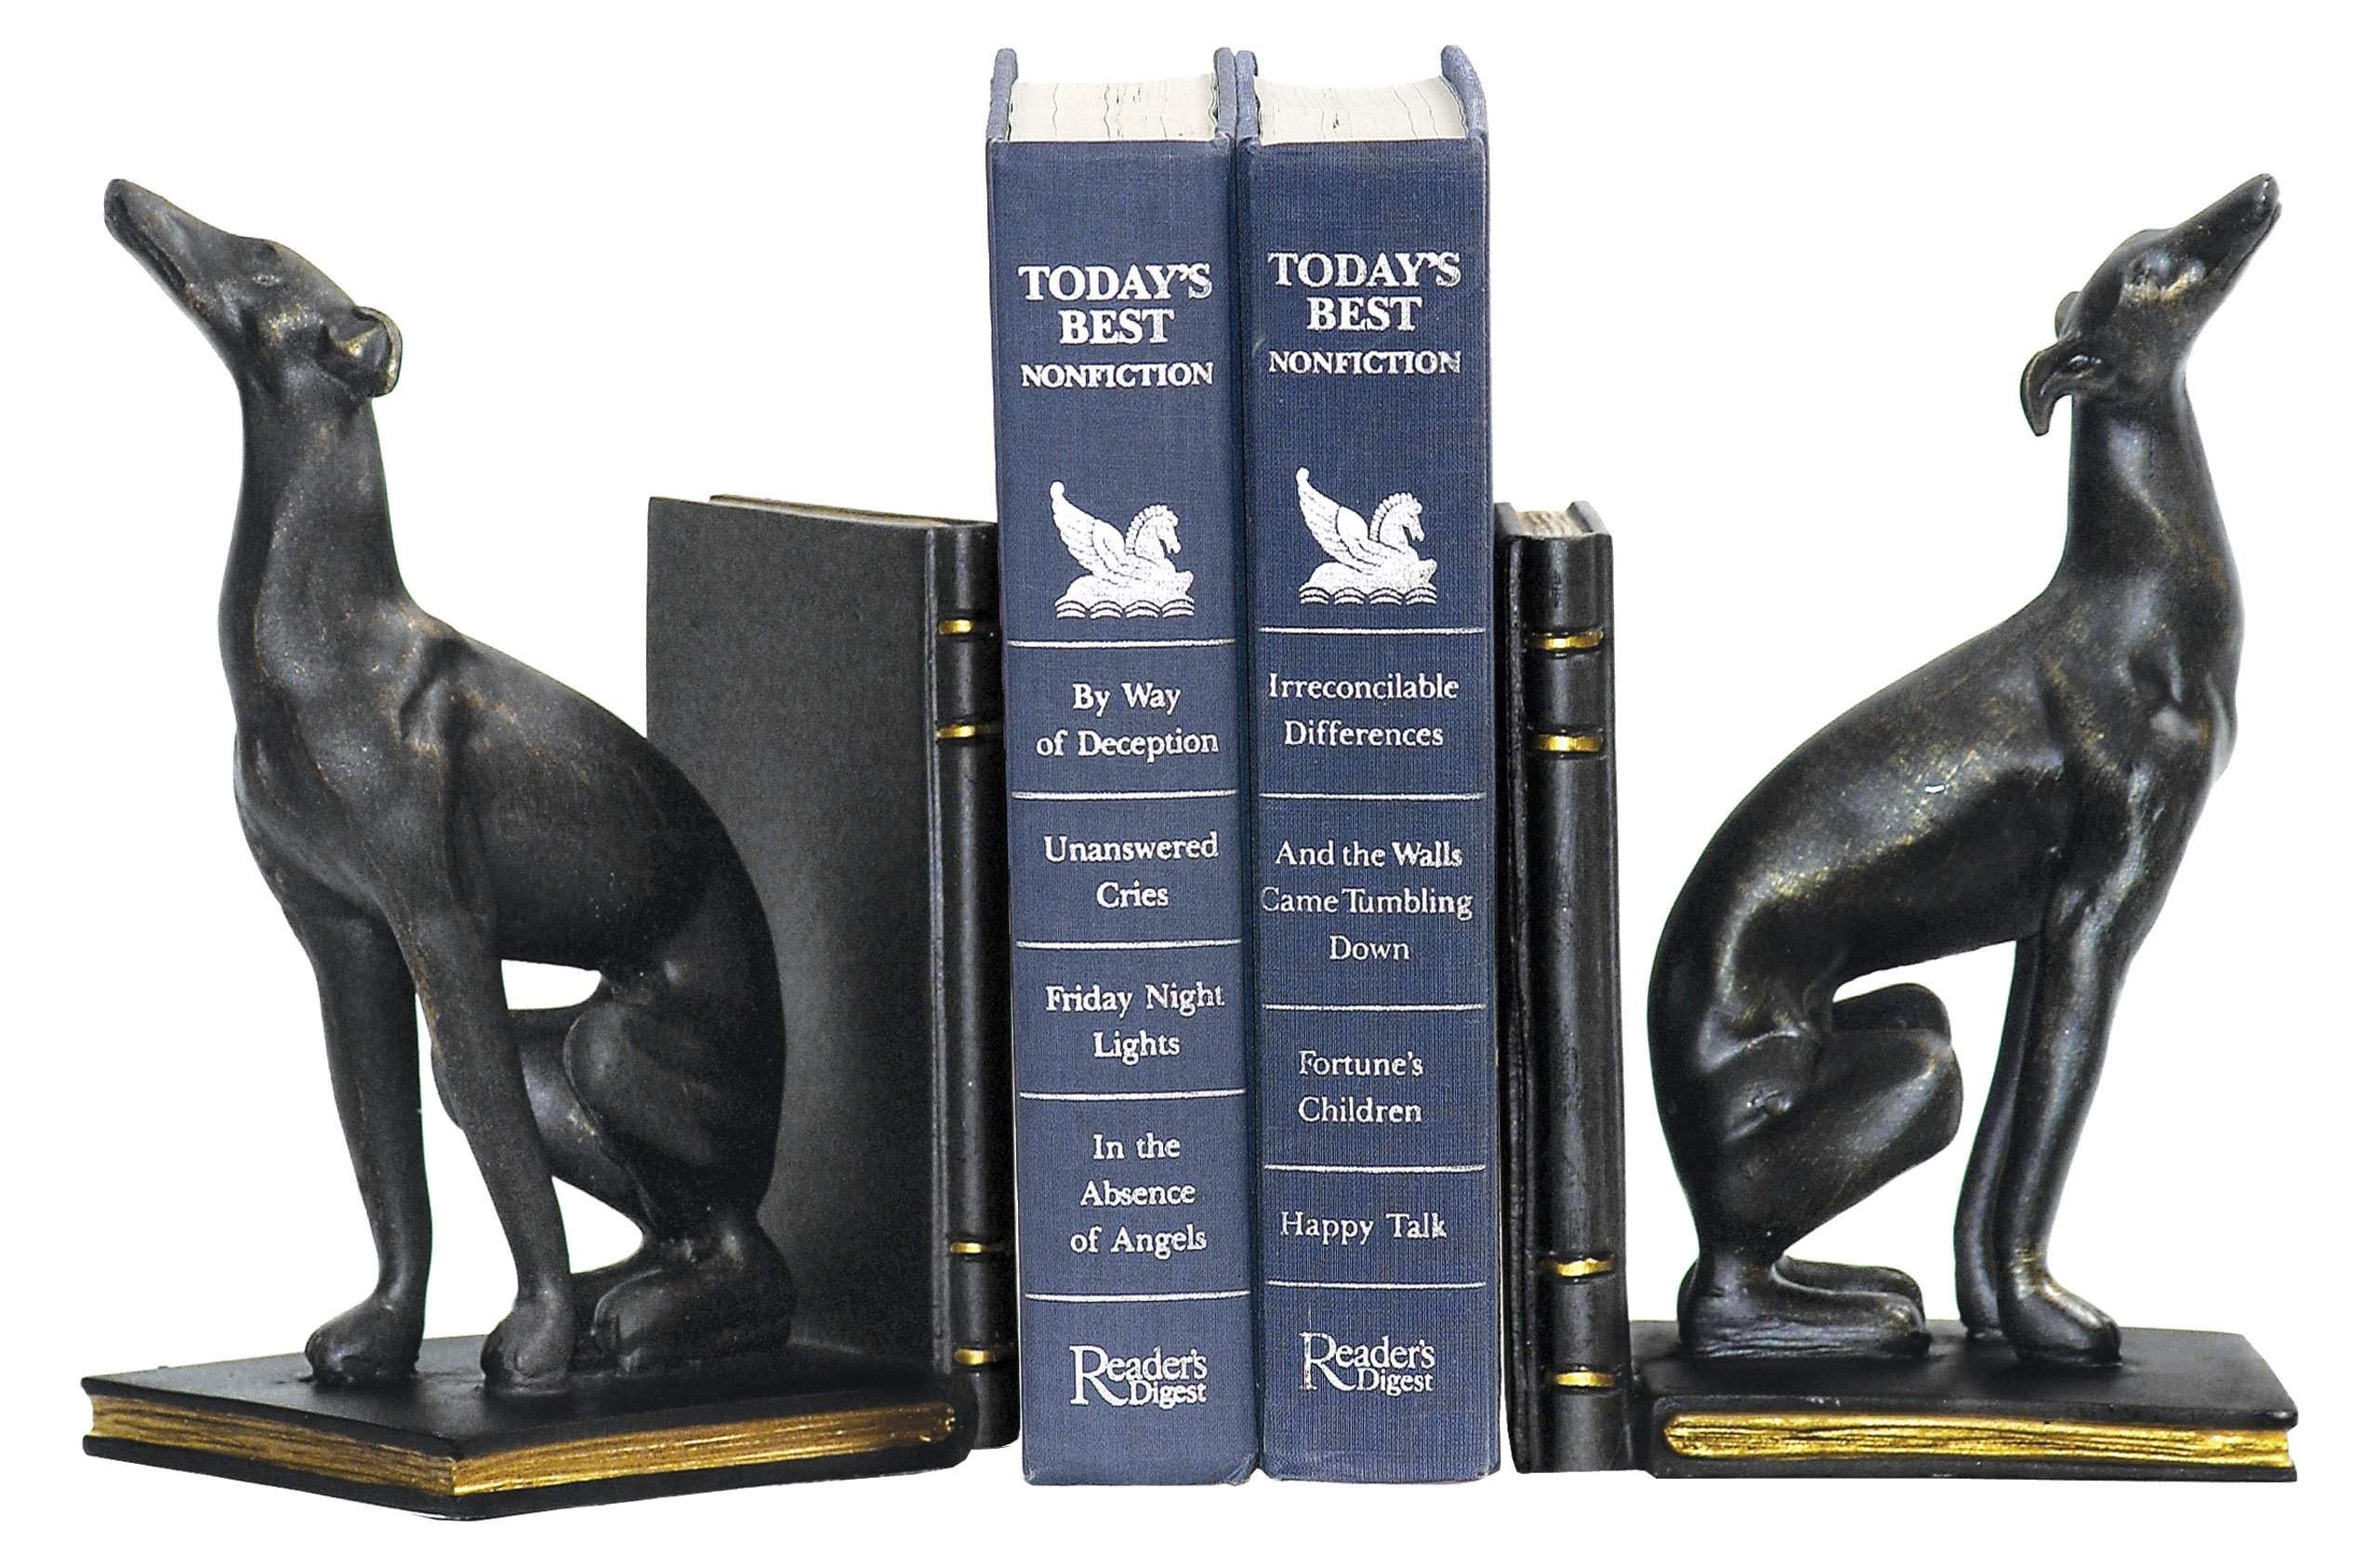 Sterling Pair of Greyhound Bookends, Black